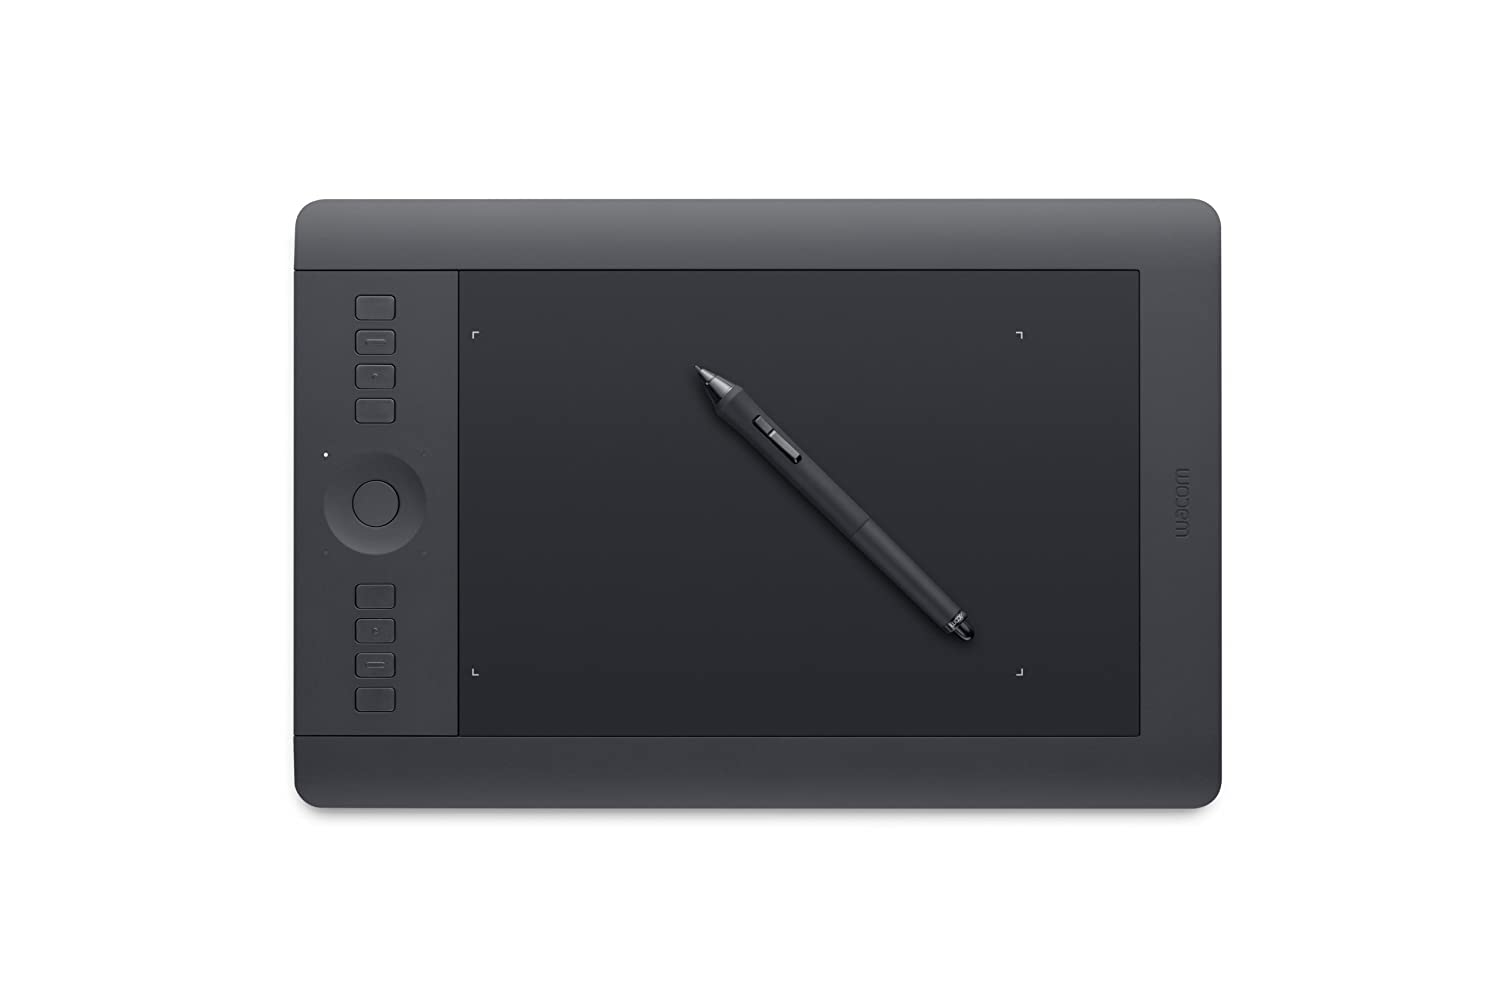 binguacom wacom intuos pro pen and touch tablet medium